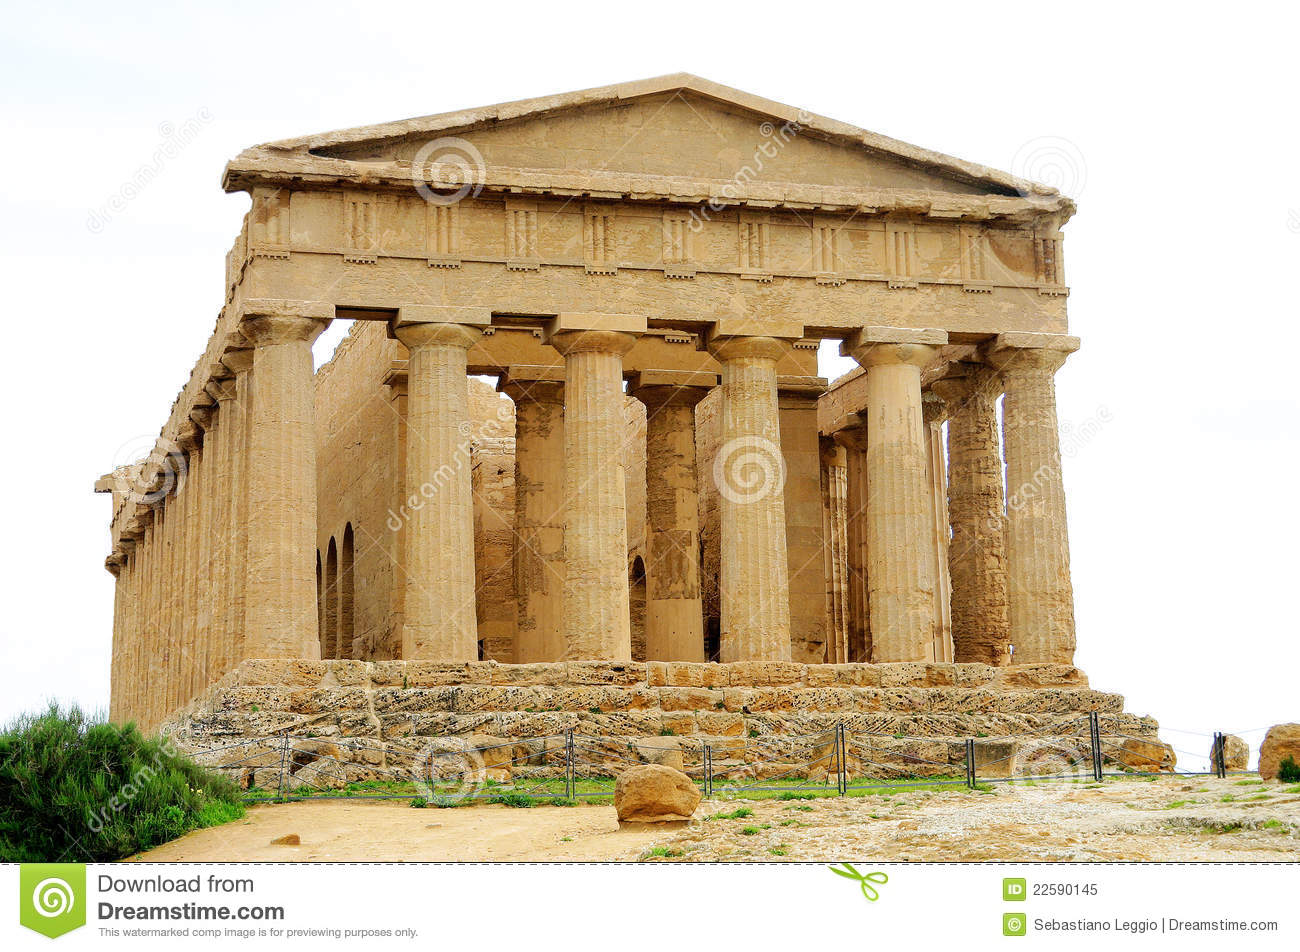 Oude griekse tempel in agrigento stock afbeelding afbeelding 22590145 - Oude griekse decoratie ...